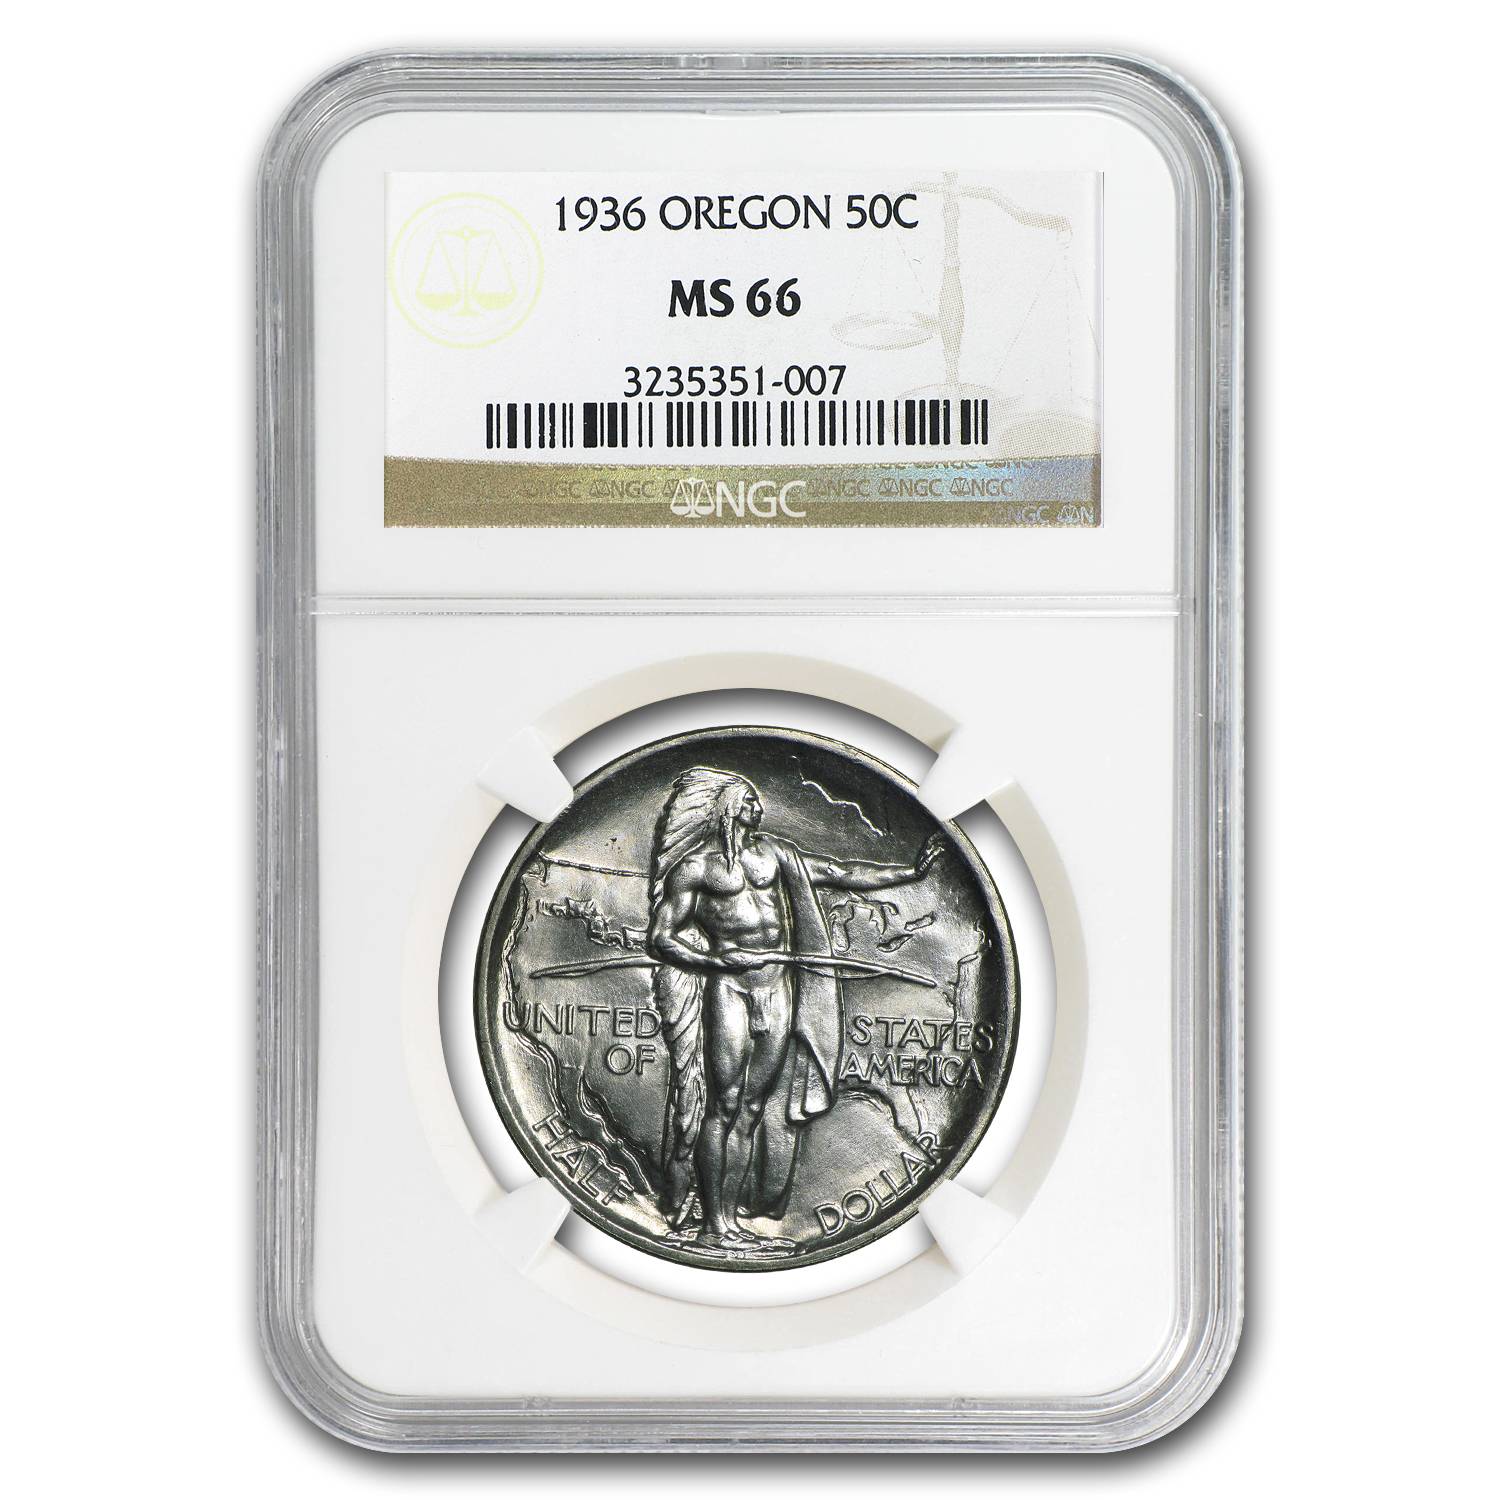 1936 Oregon Trail Commemorative Half Dollar MS-66 NGC